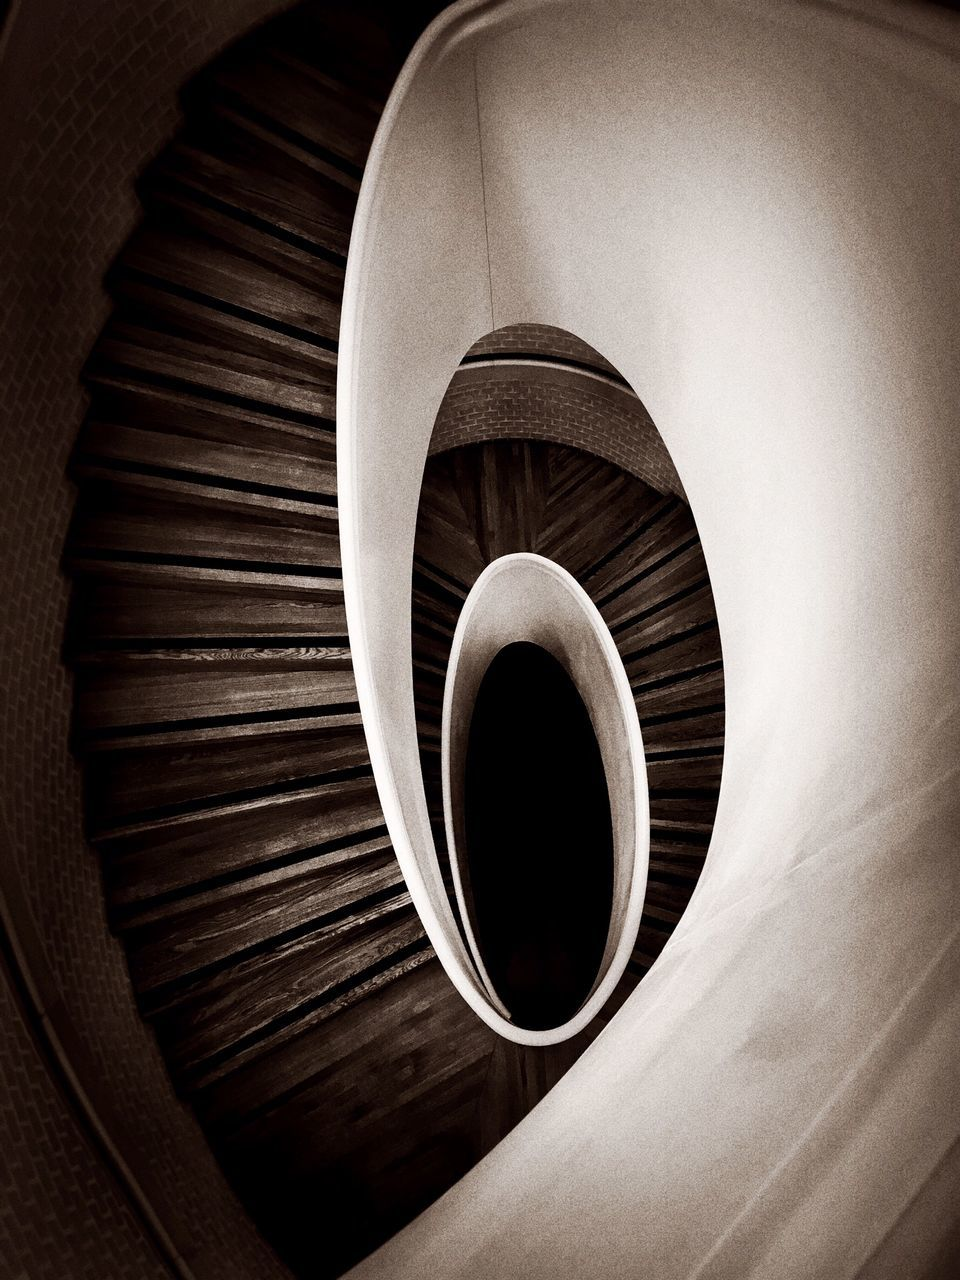 circle, spiral, indoors, high angle view, no people, steps and staircases, staircase, steps, directly above, spiral stairs, close-up, day